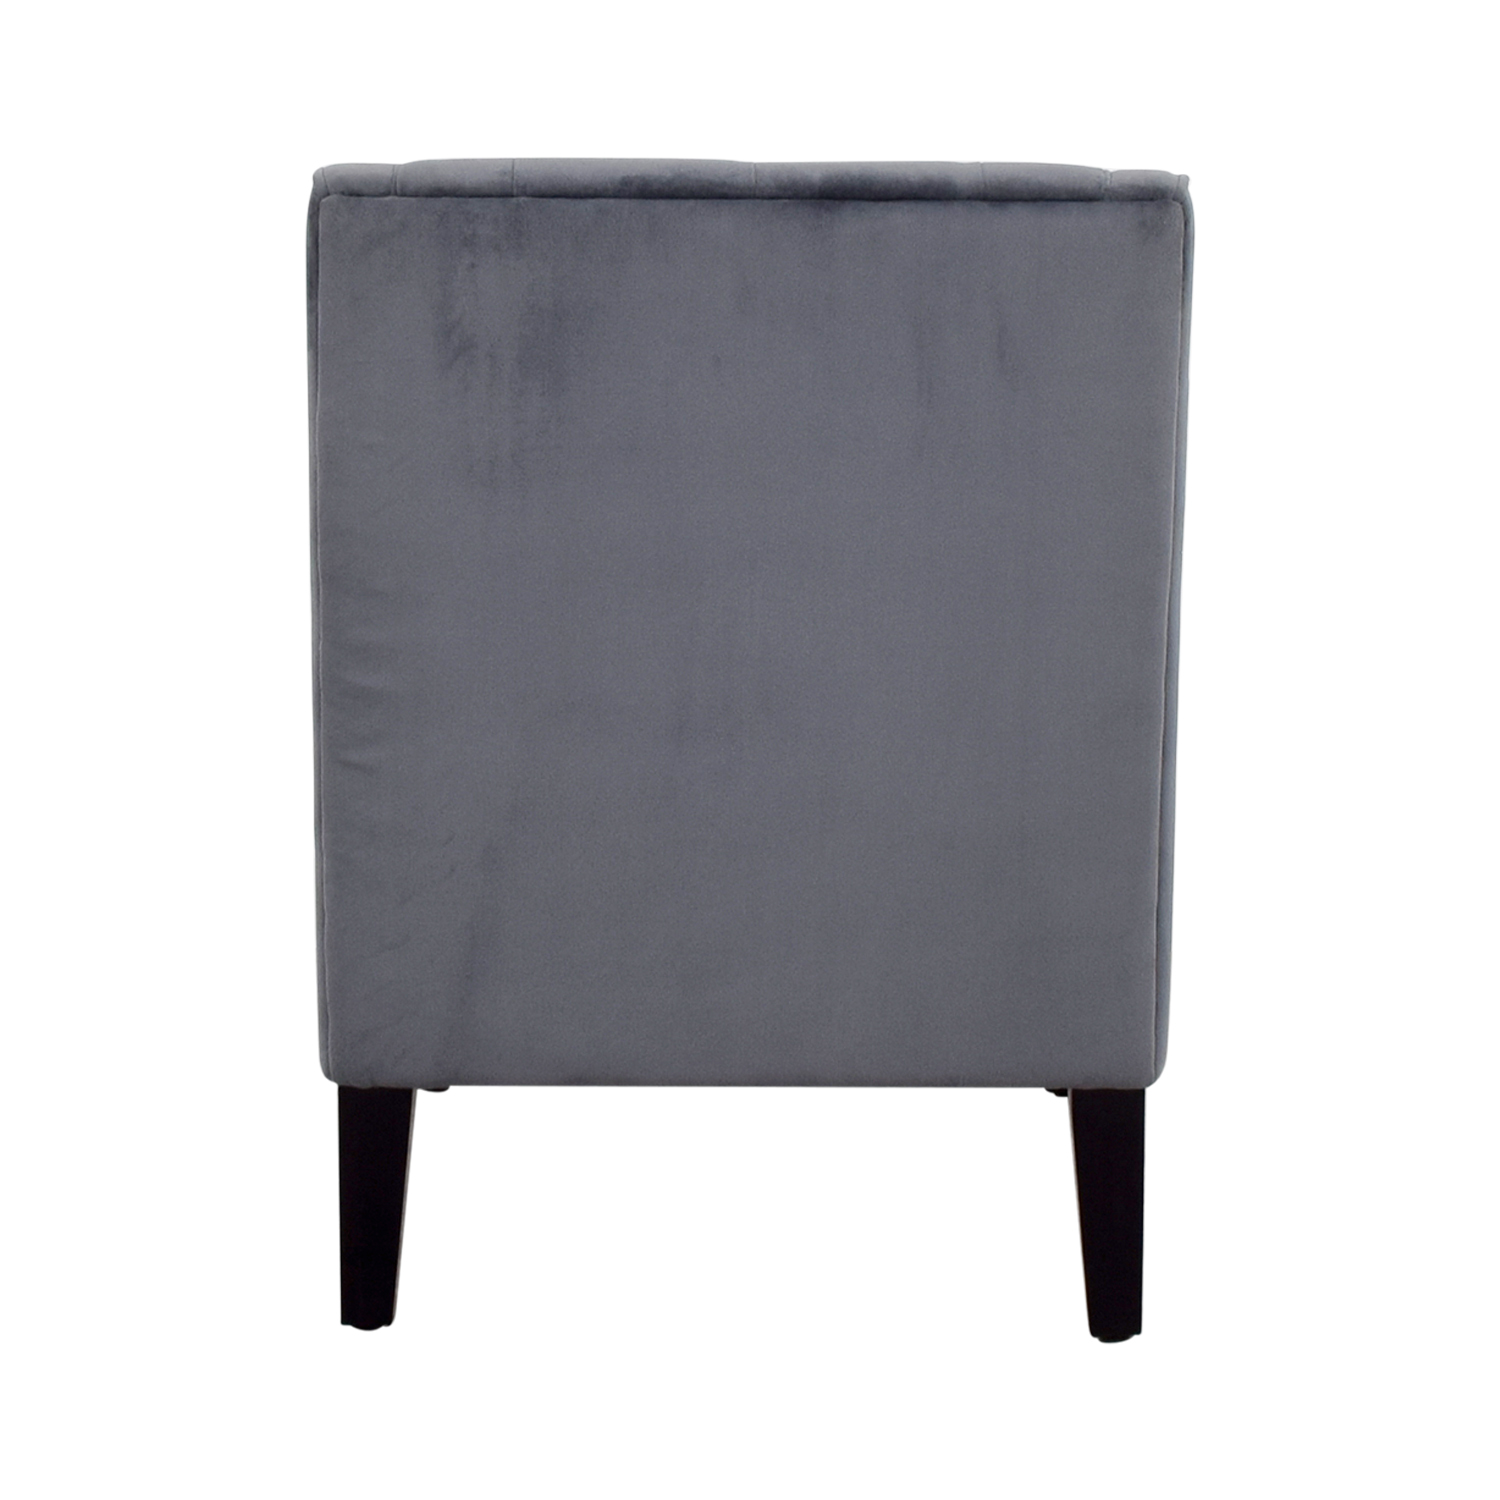 ... Buy Abbyson Furniture Grey Microsuede Tufted Arm Chair Abbyson Furniture  Accent Chairs ...